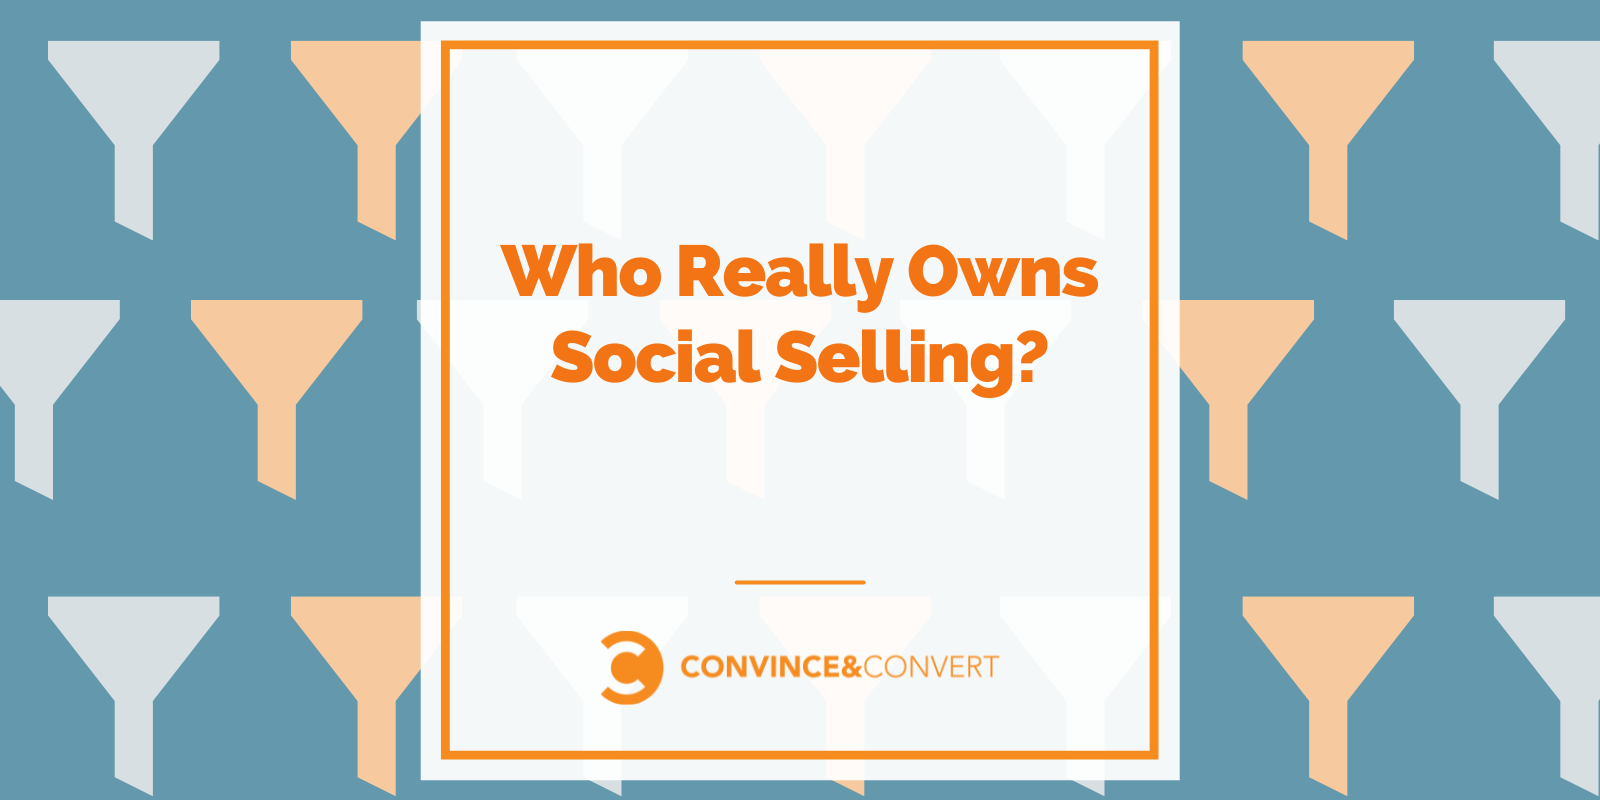 Who Really Owns Social Selling